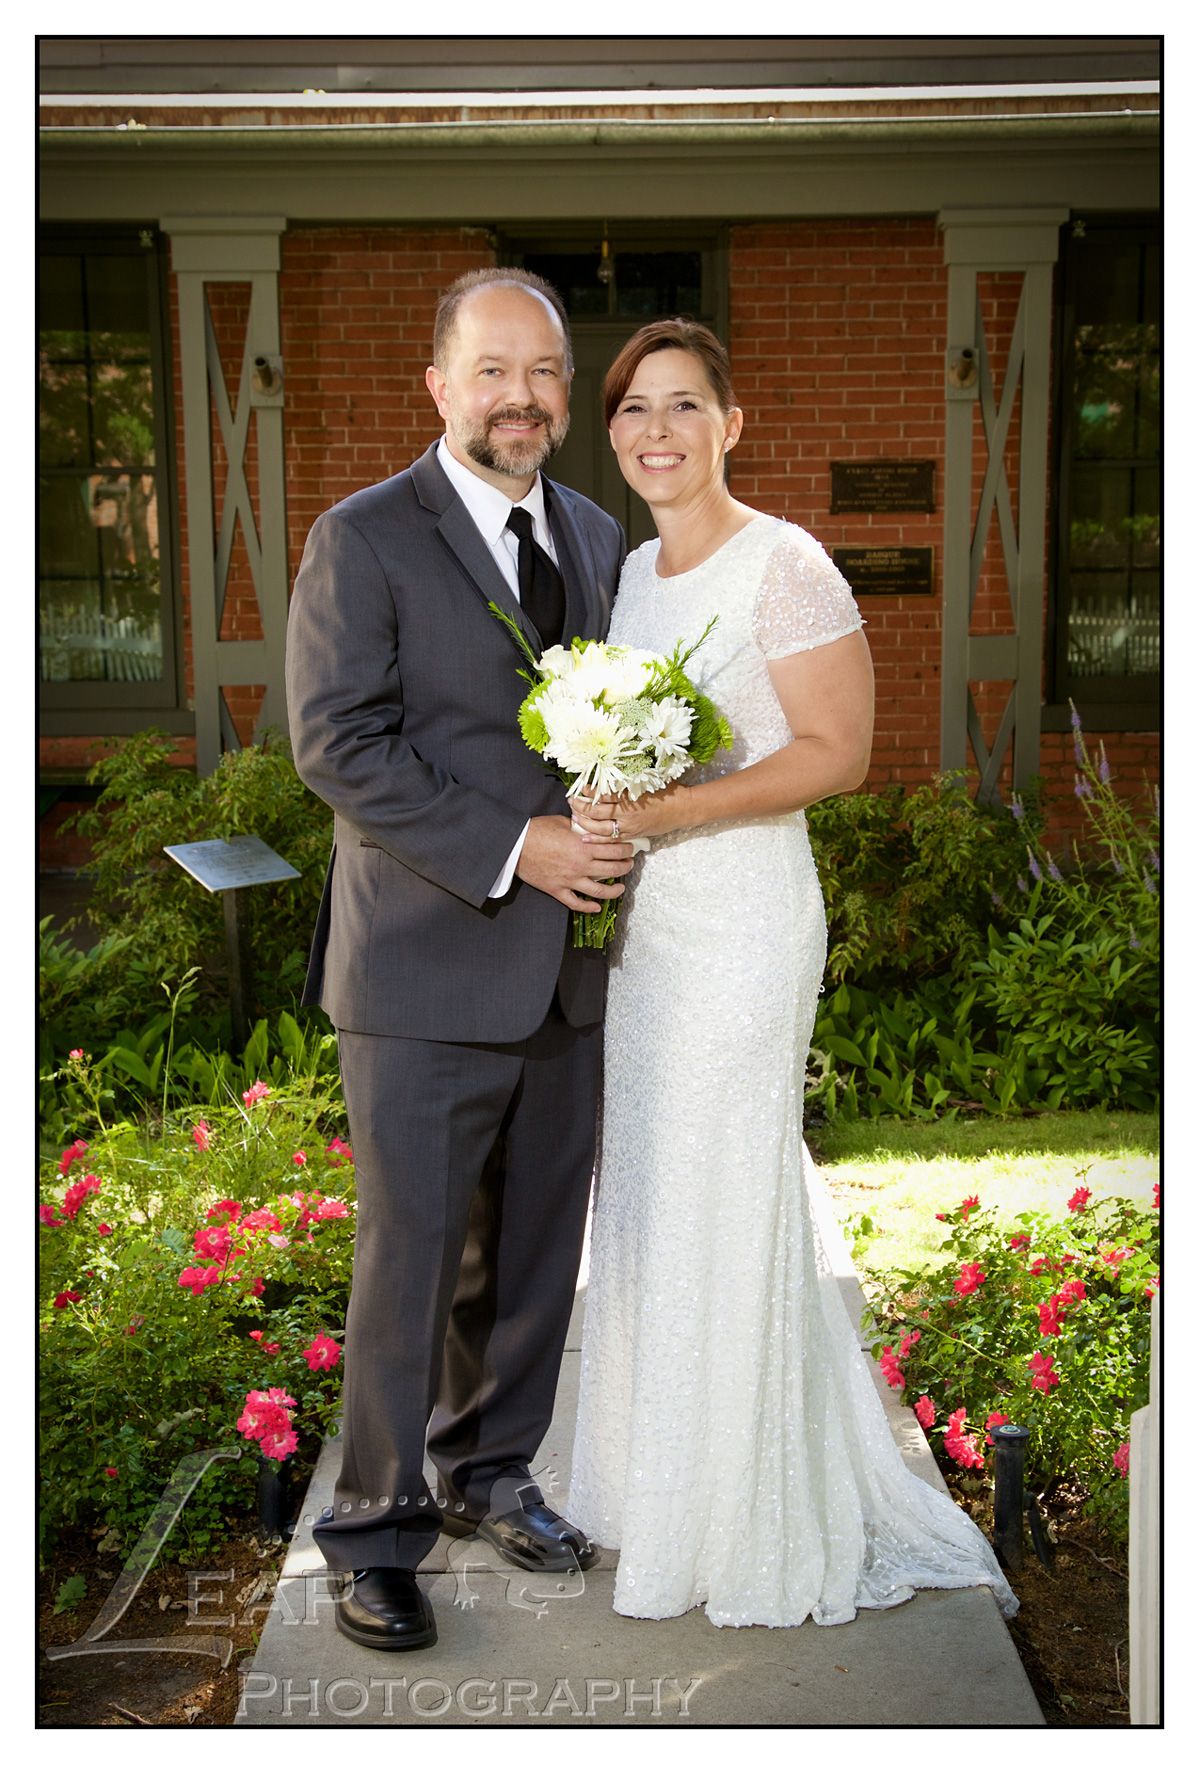 wedding picture taken in downtown Boise